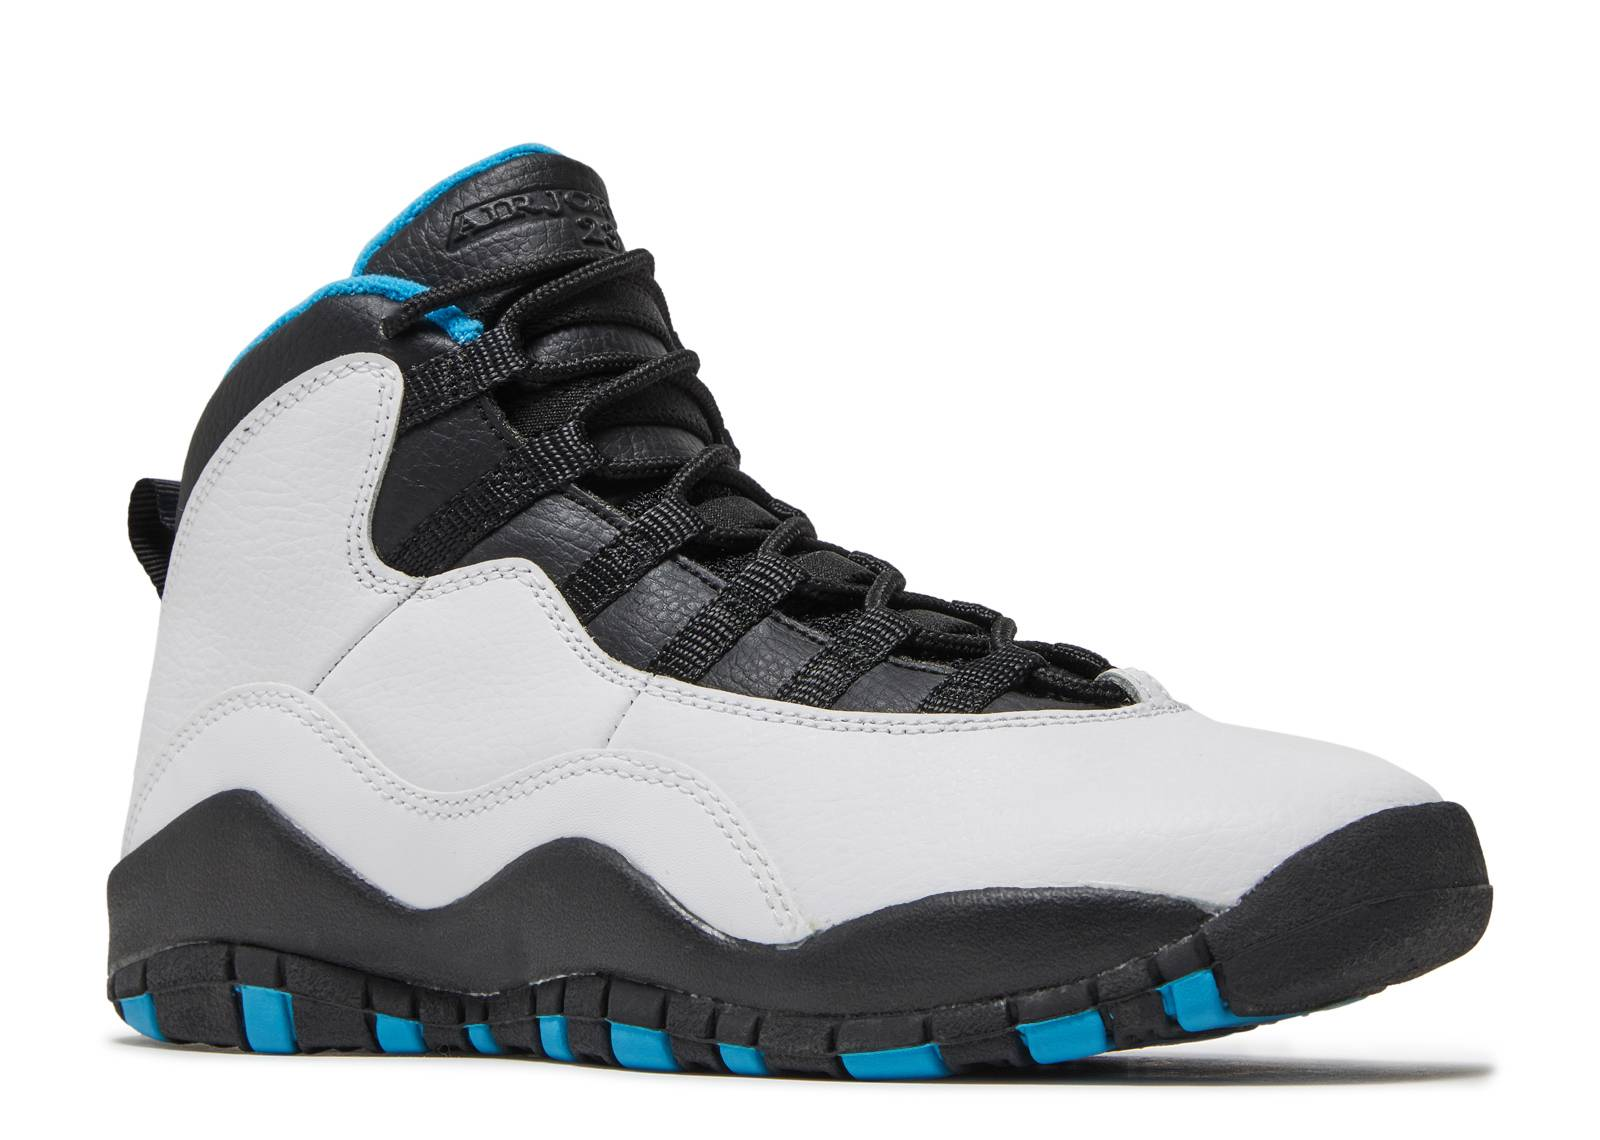 Search for blue jordan retro Preisvergleich, Testbericht und KaufberatungEnjoy Big Savings· 95% customer satisfaction· Huge Selection· Search for Great DealsGoods: Clothing and Accessories, Handbags and Wallets, Luggage and Shoes.